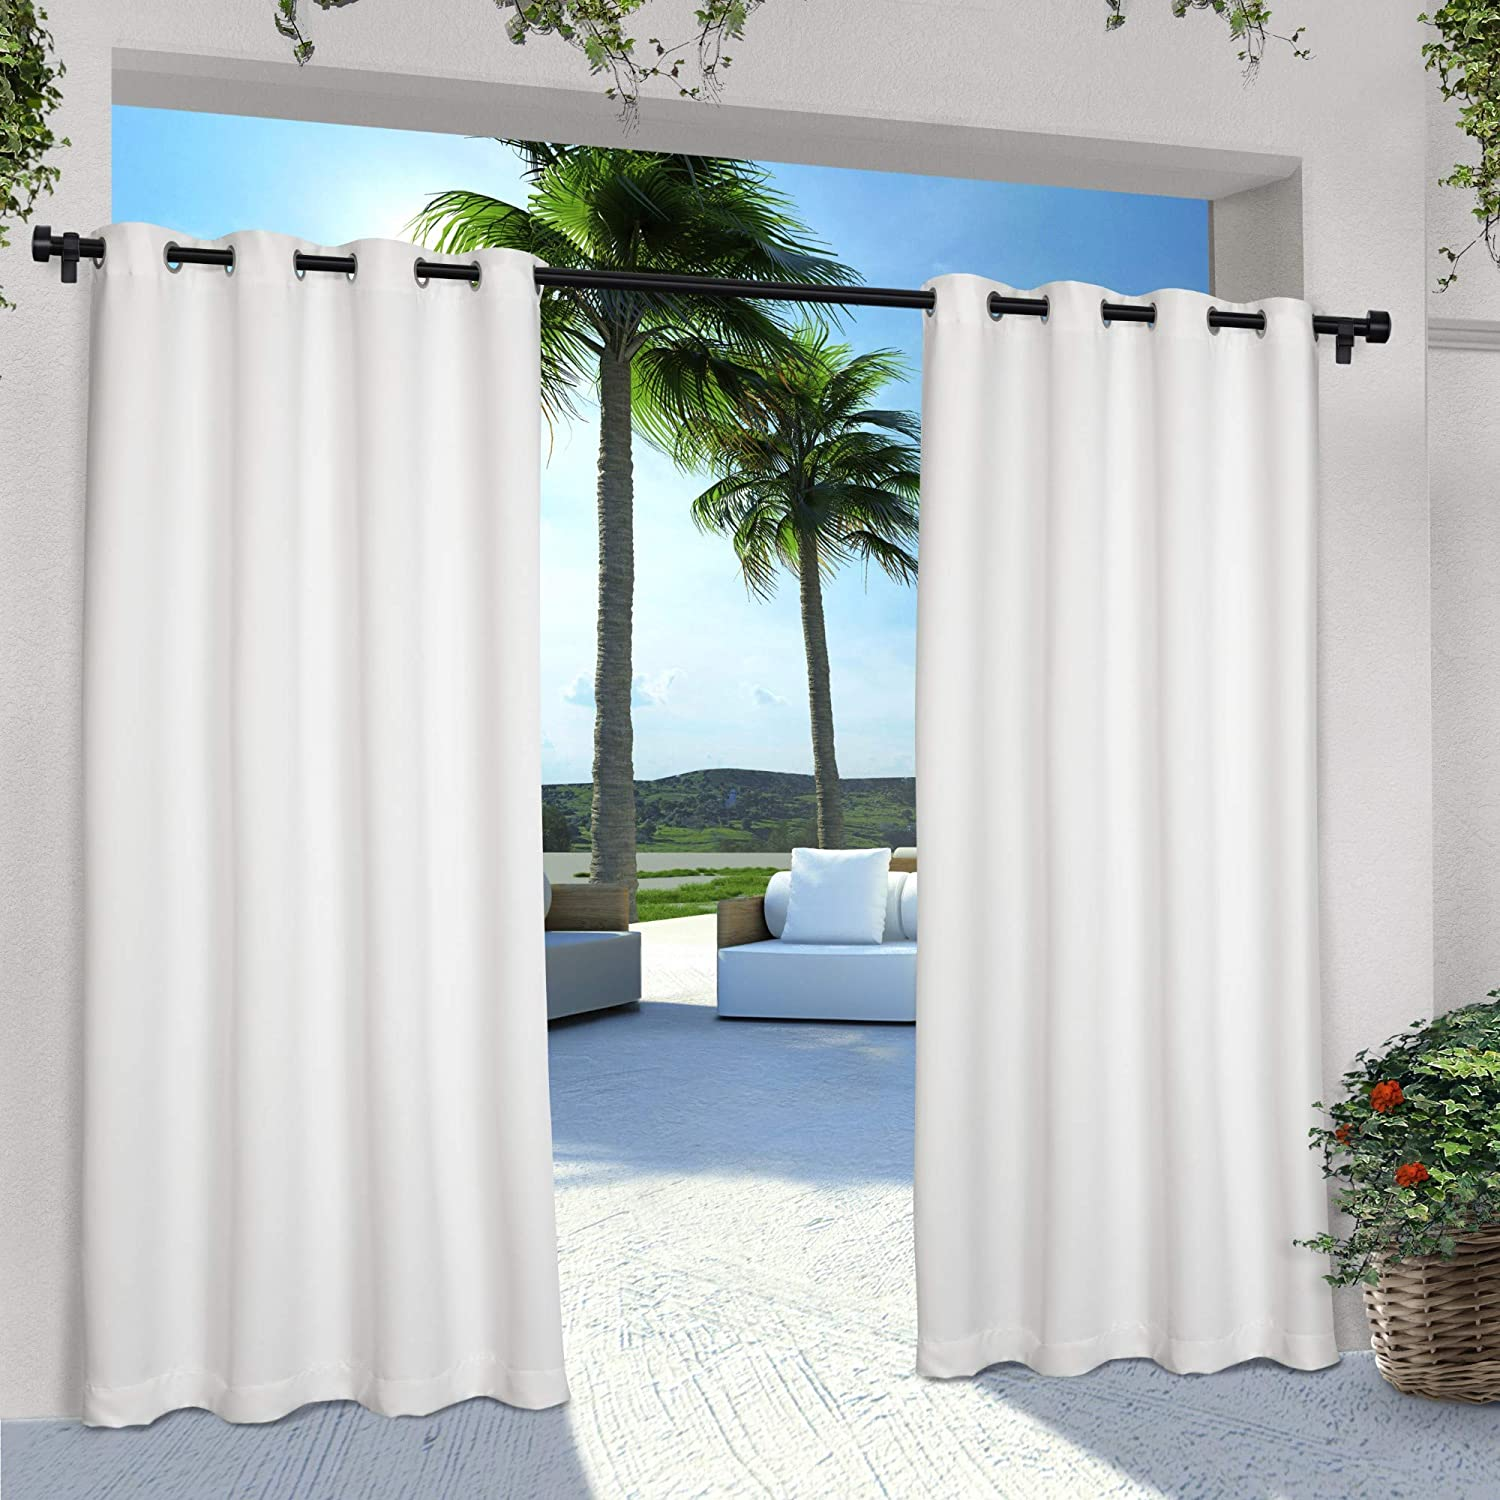 Exclusive Home Curtains In Out In Out Solid GT Panel Pair, 54x120, White